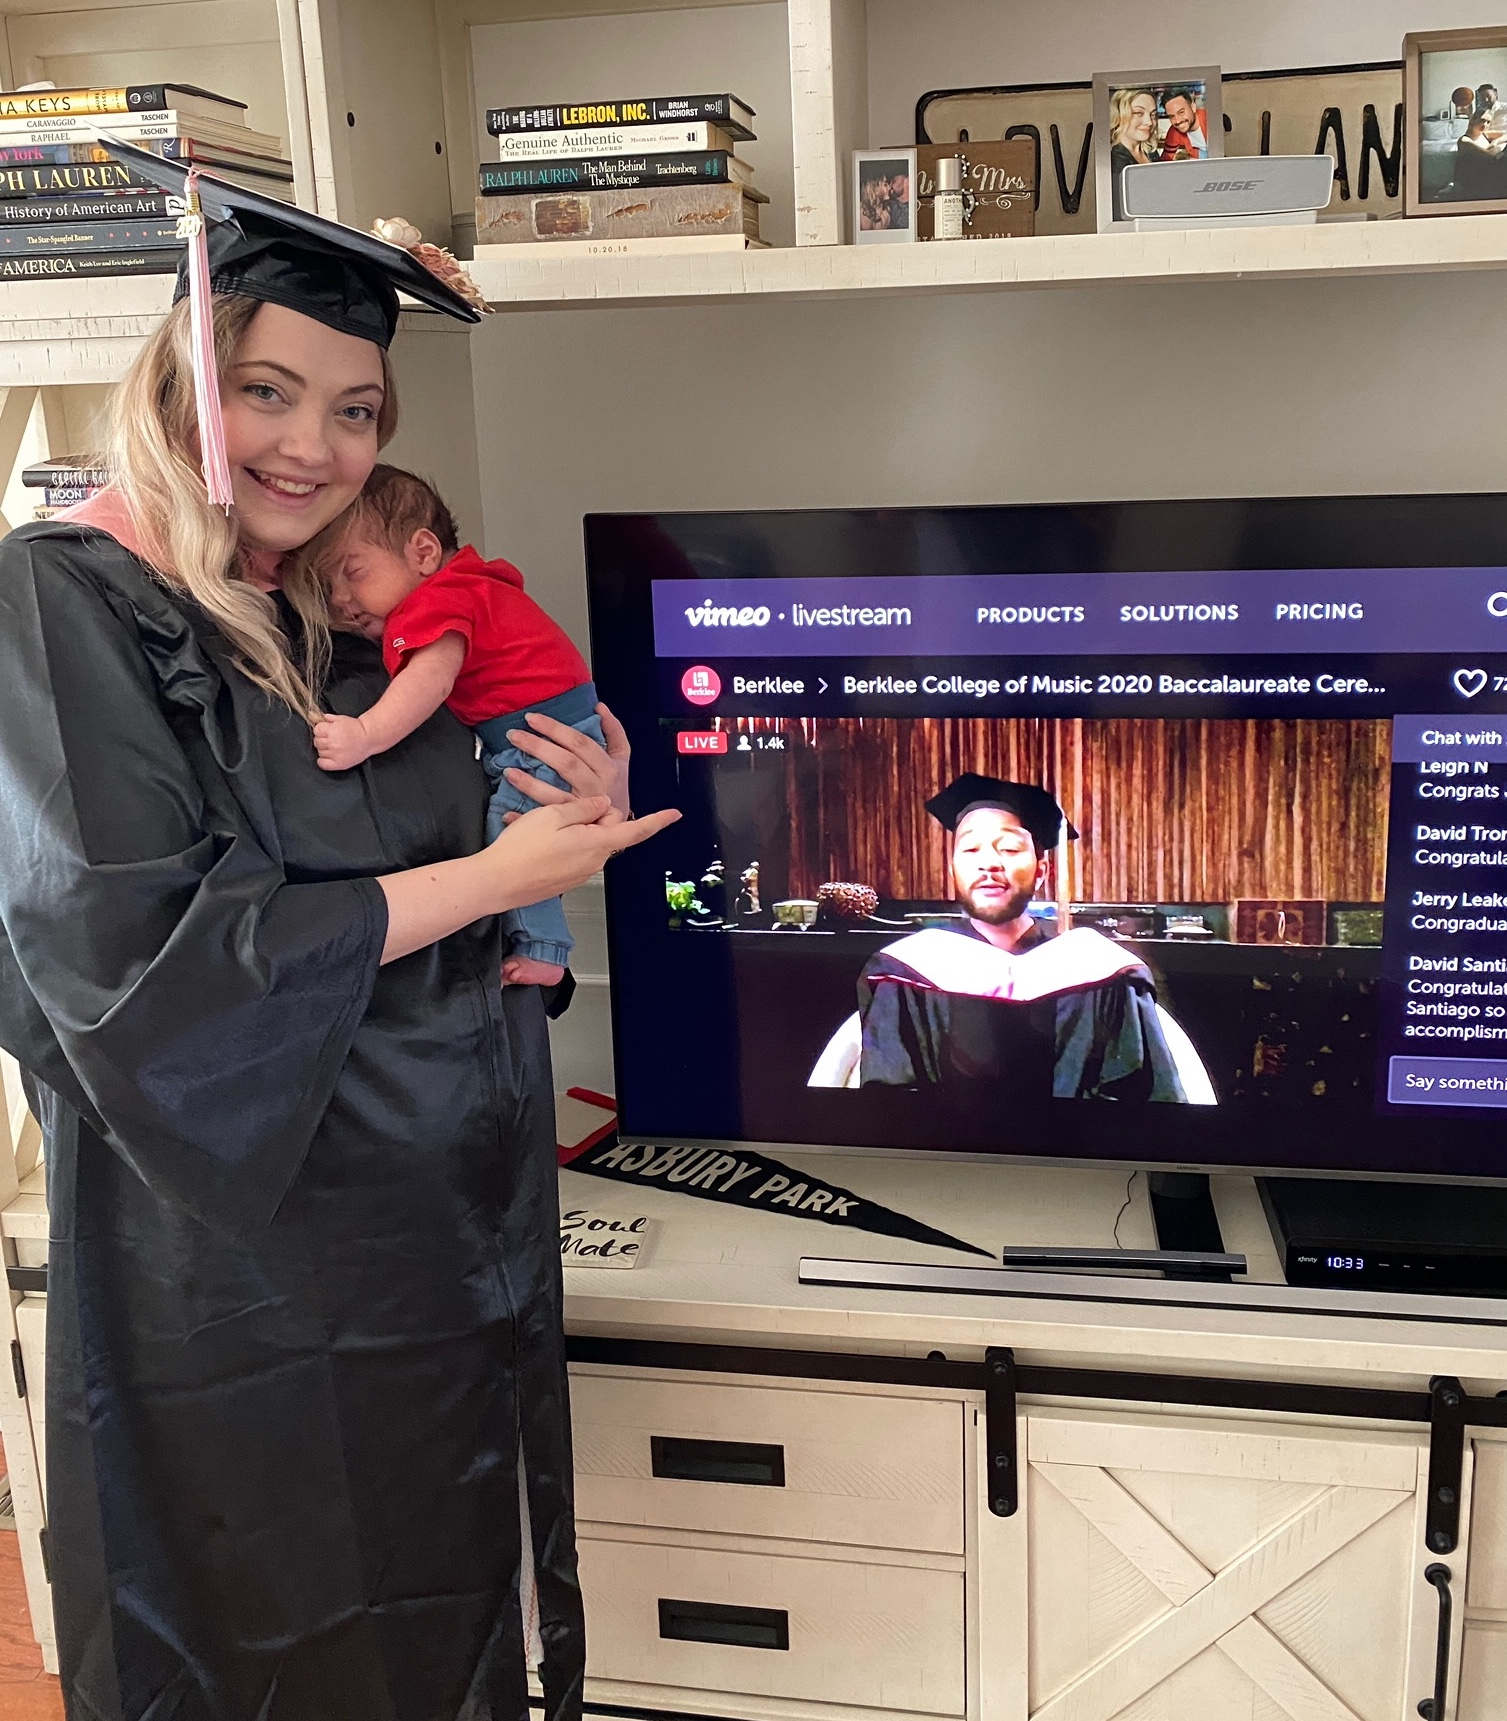 Berklee Online graduate Carrie Lane Pearlman watches the John Legend Tribute with her newborn son during the virtual Commencement concert.